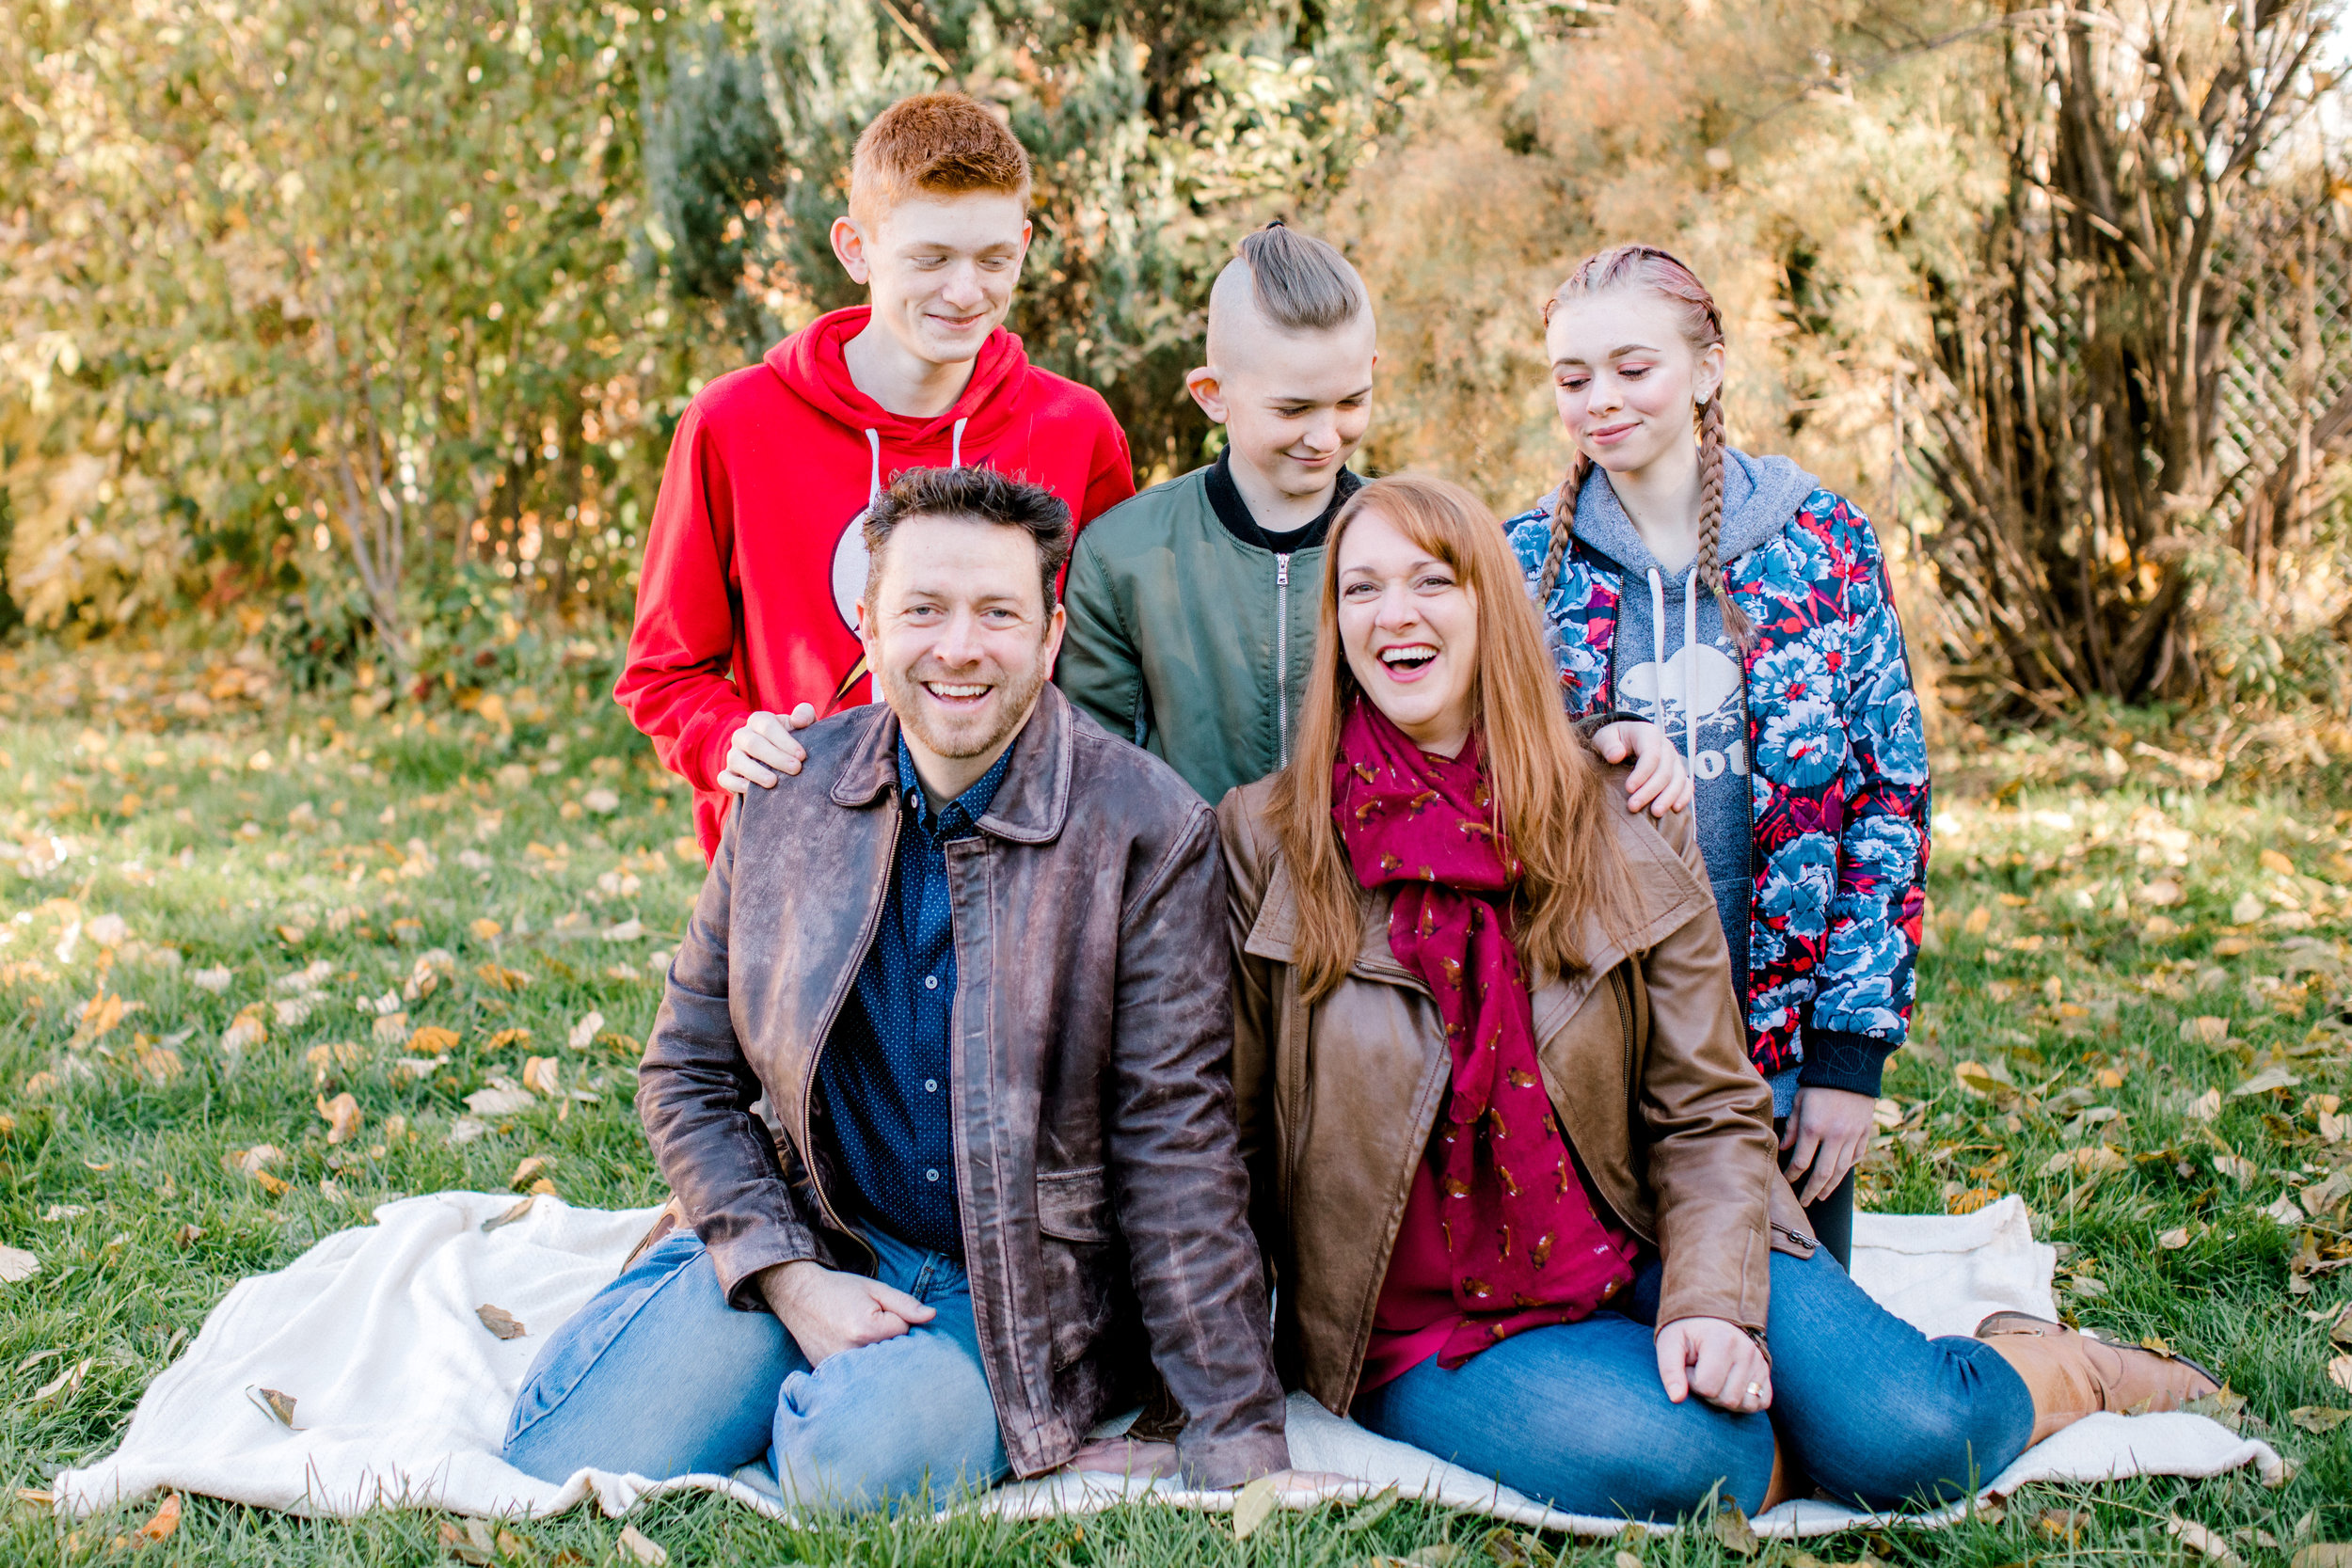 The Donnelly family out in the park for a seasonal photoshoot.  Photo courtesy of Michelle Donnelly